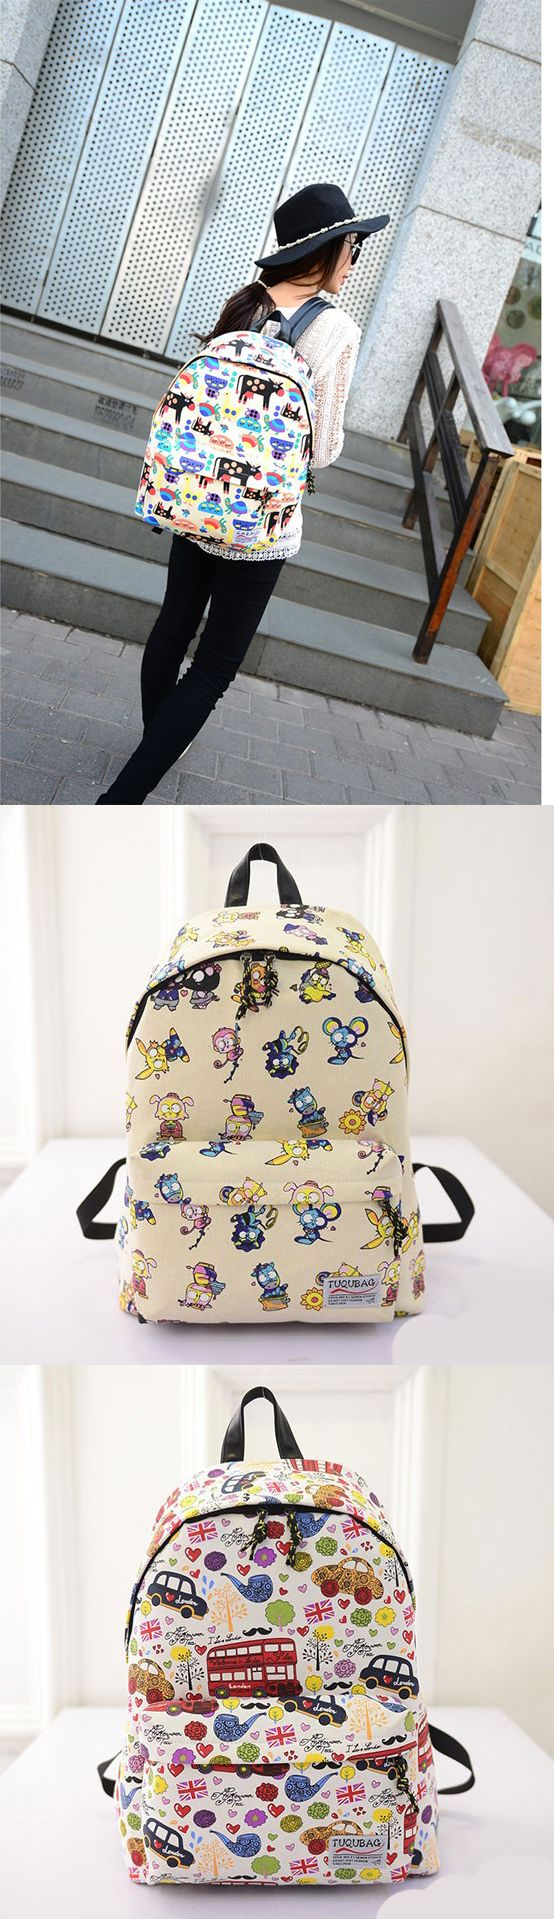 2017 New Arrival Cute Cartoon Casual Mustache British Flag Graffiti Backpack backpacks for girls, pink backpack, mini backpack, cool backpacks, backpacks for women, leather backpack, travel backpack, laptop backpack, school backpacks, cute backpacks,